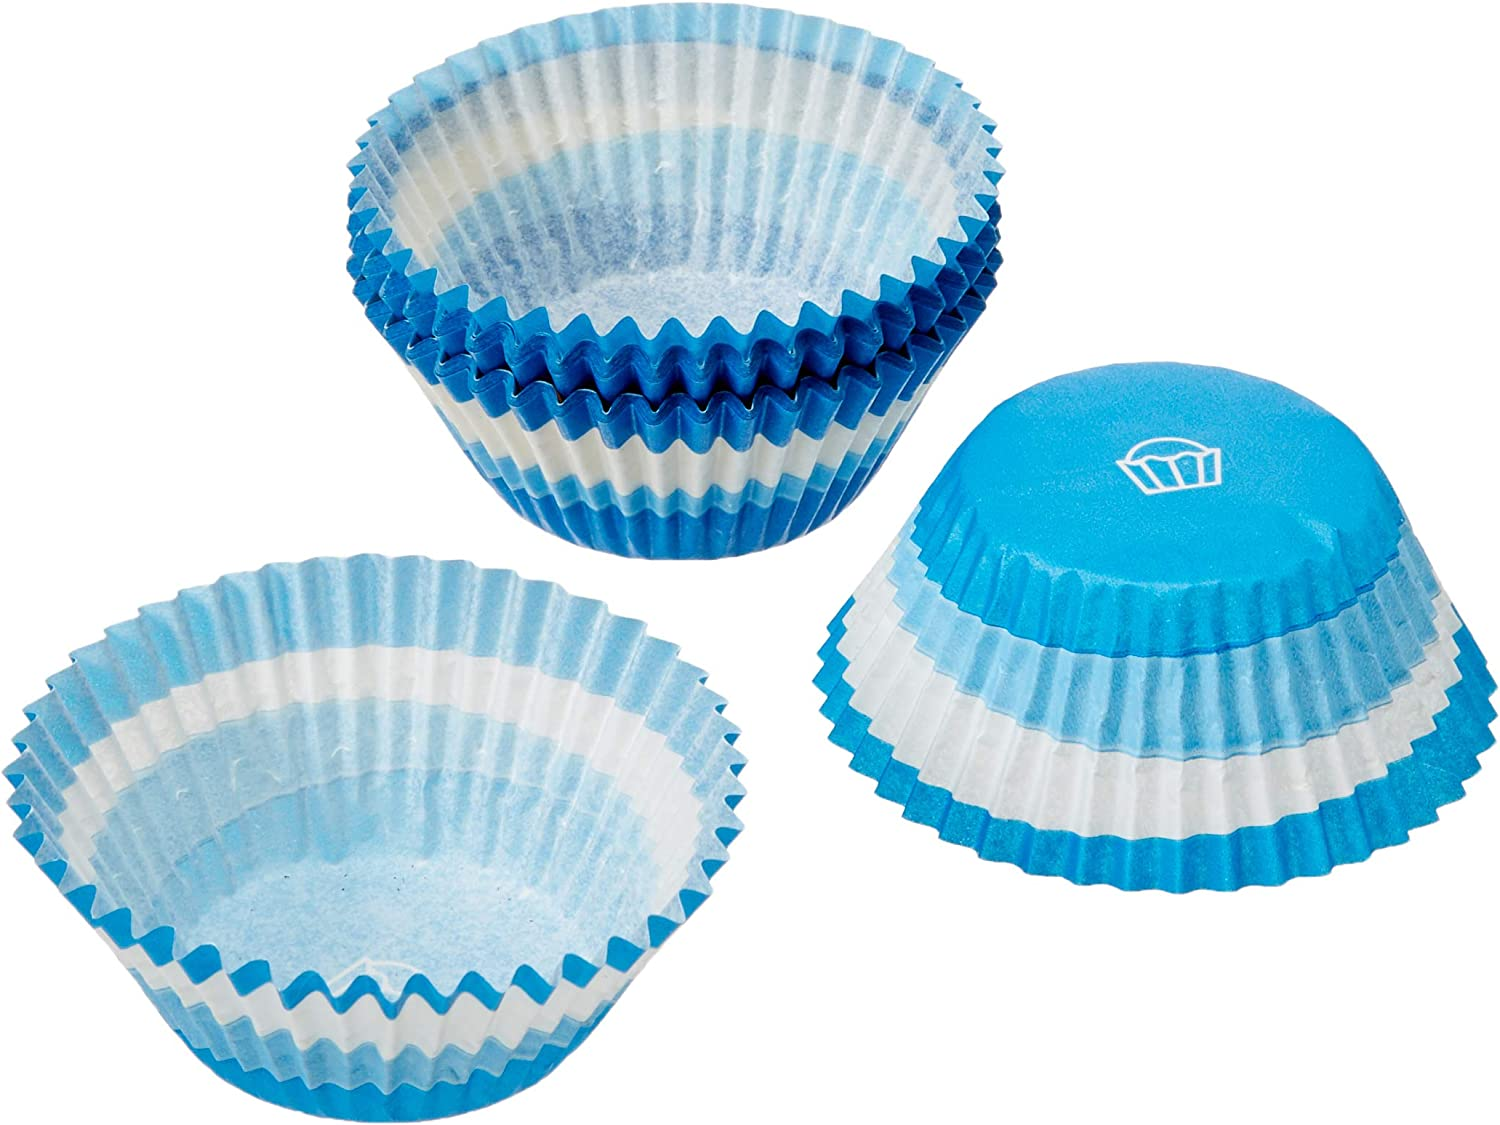 Oasis Supply Extra Thick 35 Count Baking Cups Blue//White VK99-35 Standard